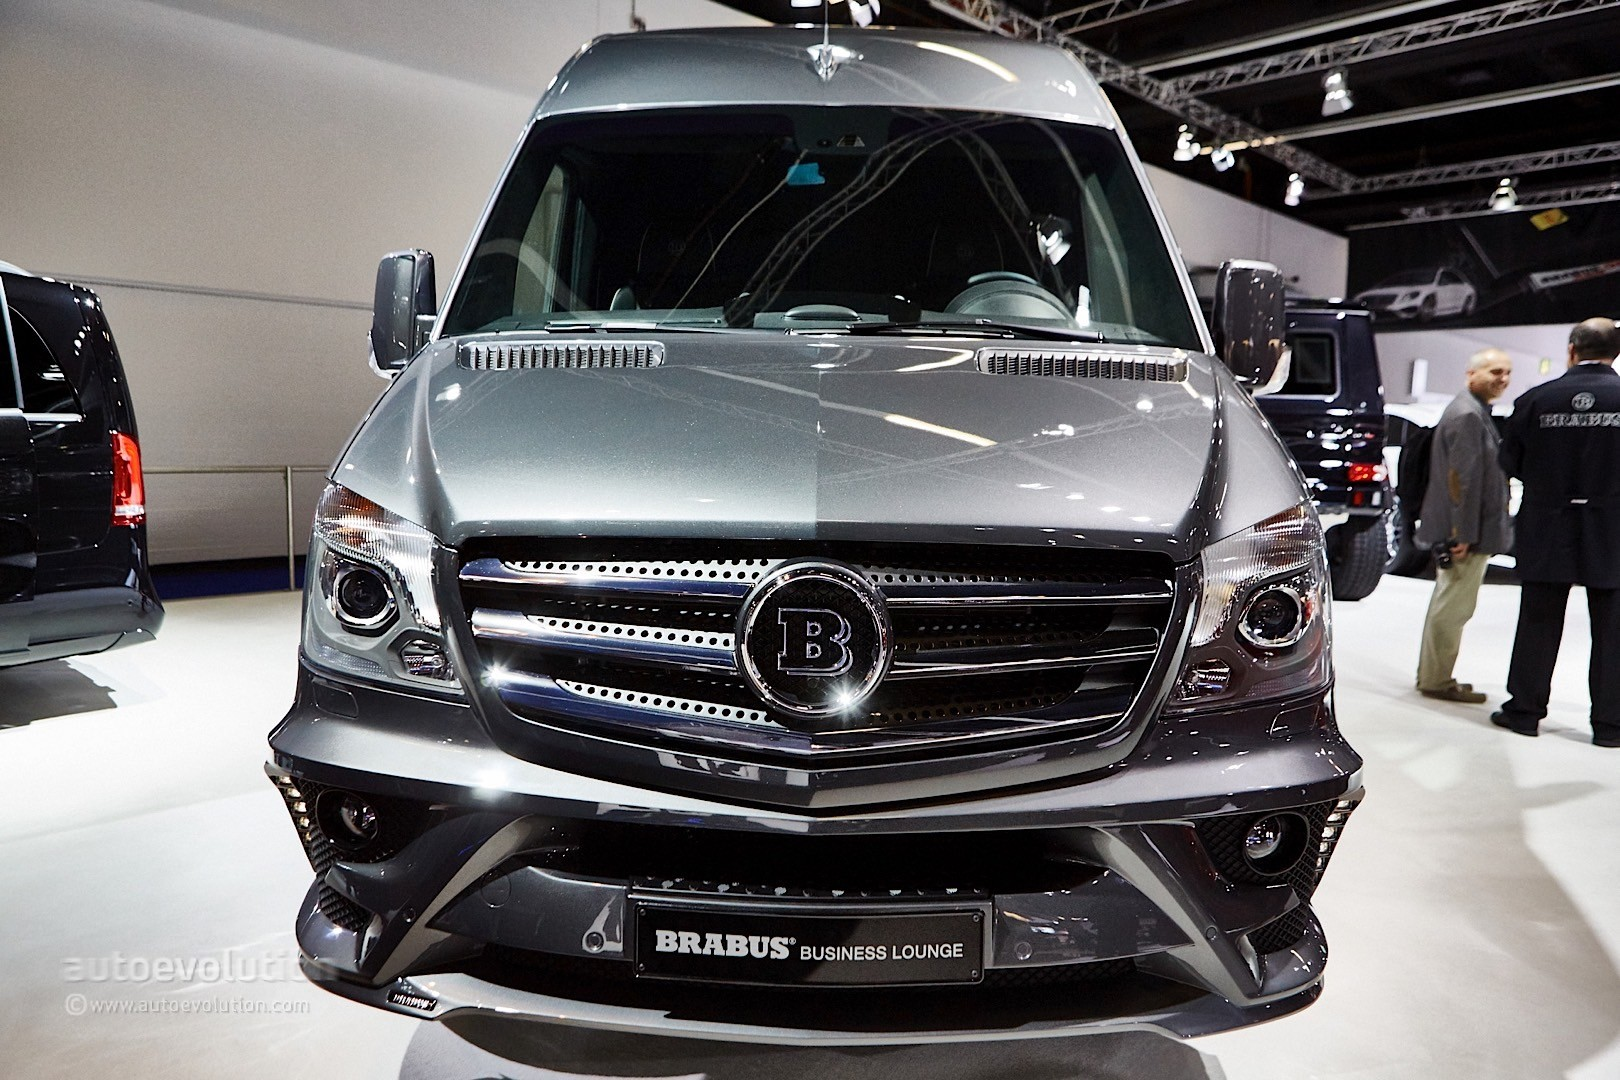 ' ' from the web at 'http://s1.cdn.autoevolution.com/images/news/gallery/brabus-sprinter-and-v-class-fill-the-luxury-van-gap-in-frankfurt-live-photos_6.jpg'